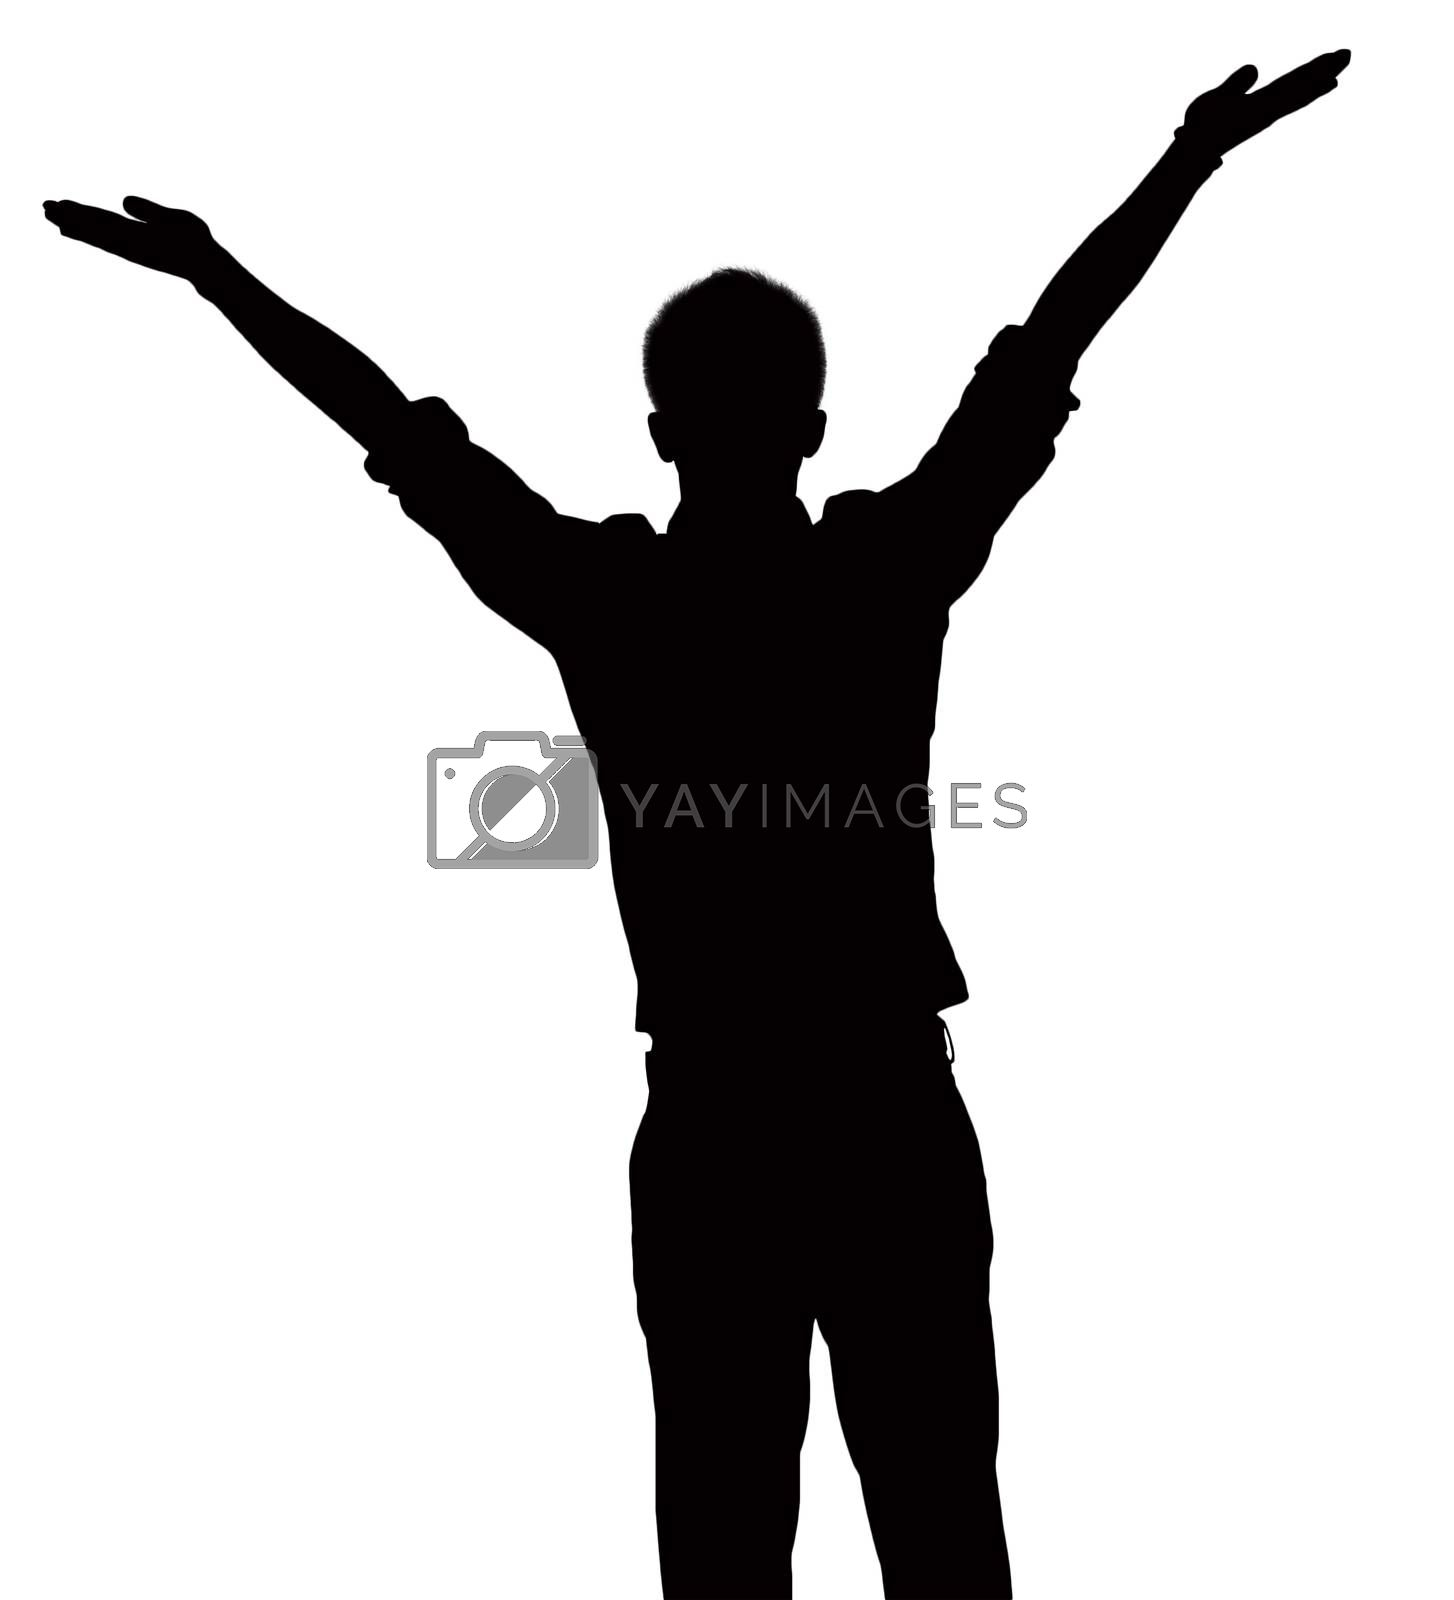 Silhouette of businessman with arms raised.